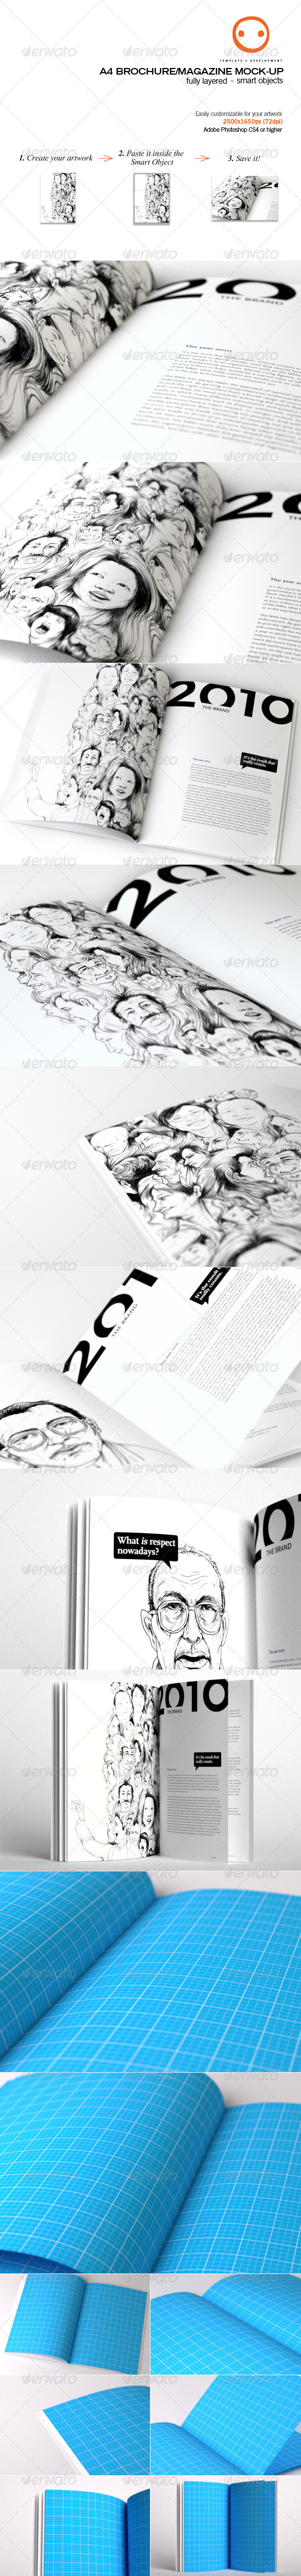 A4 Brochure/Magazine Mock-up - Magazines Print